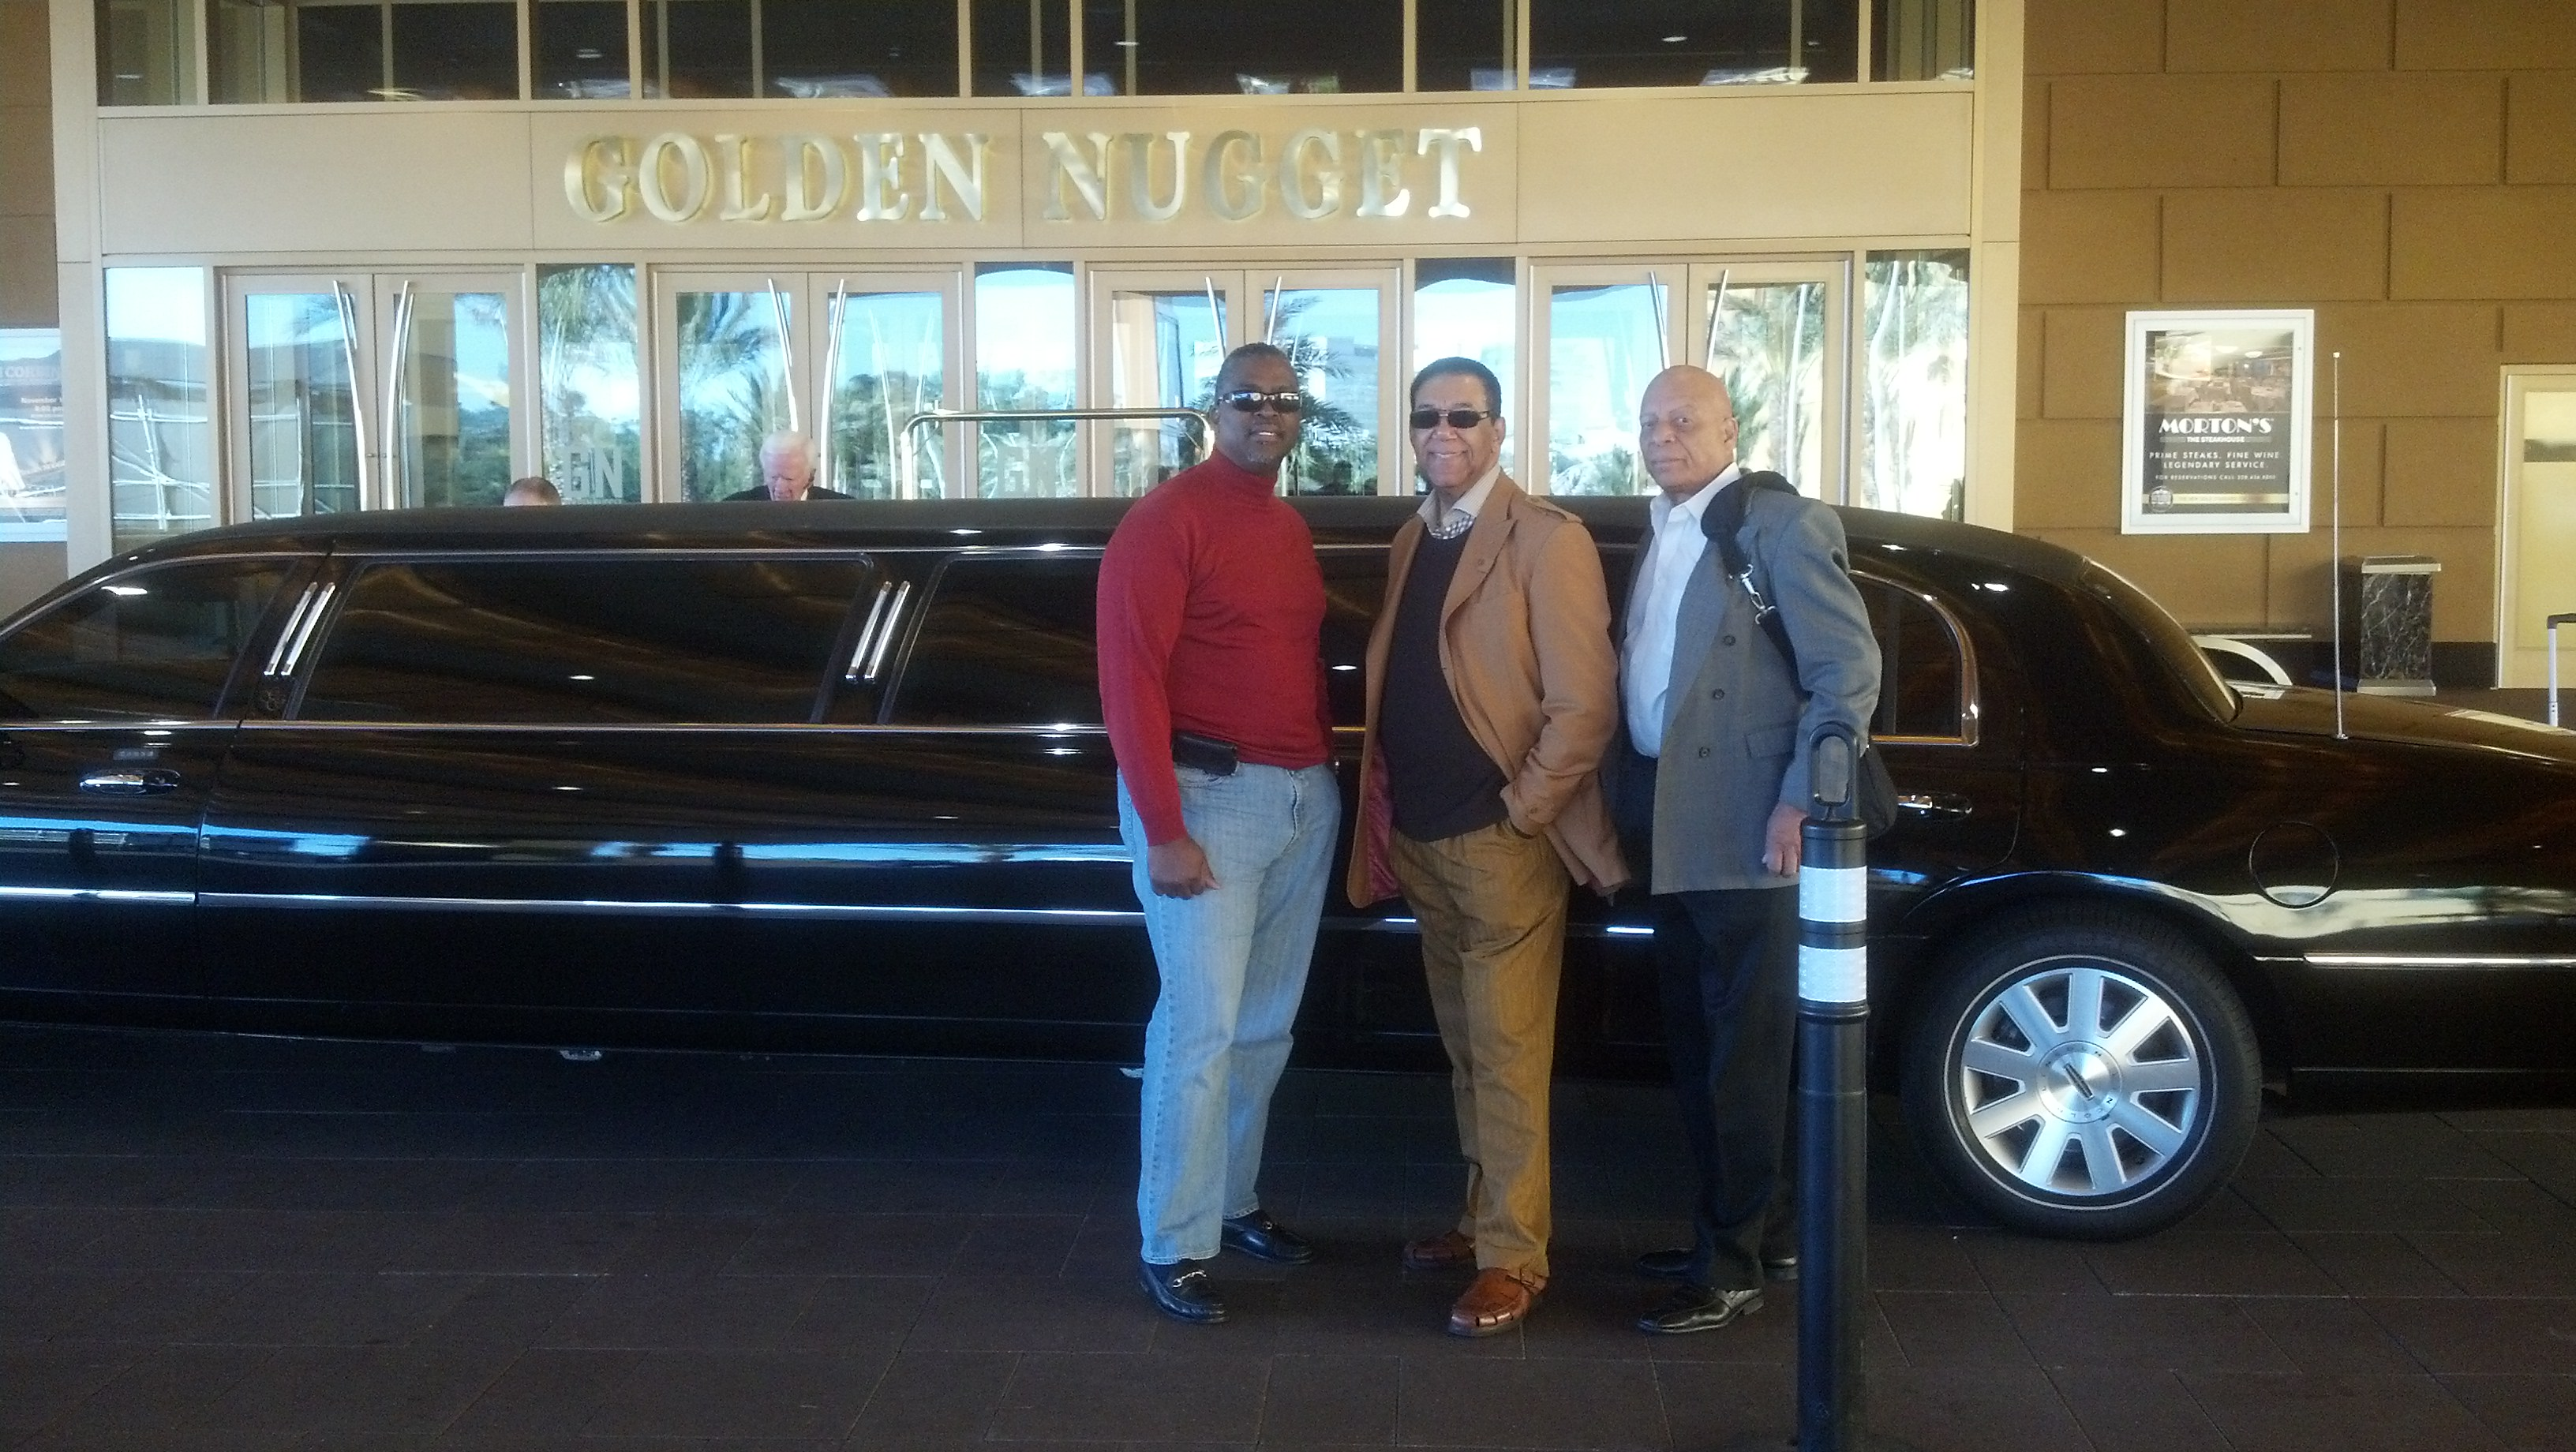 The Flamingos headed back to the airport after a sold out show at the Golden Nugget in Biloxi, S